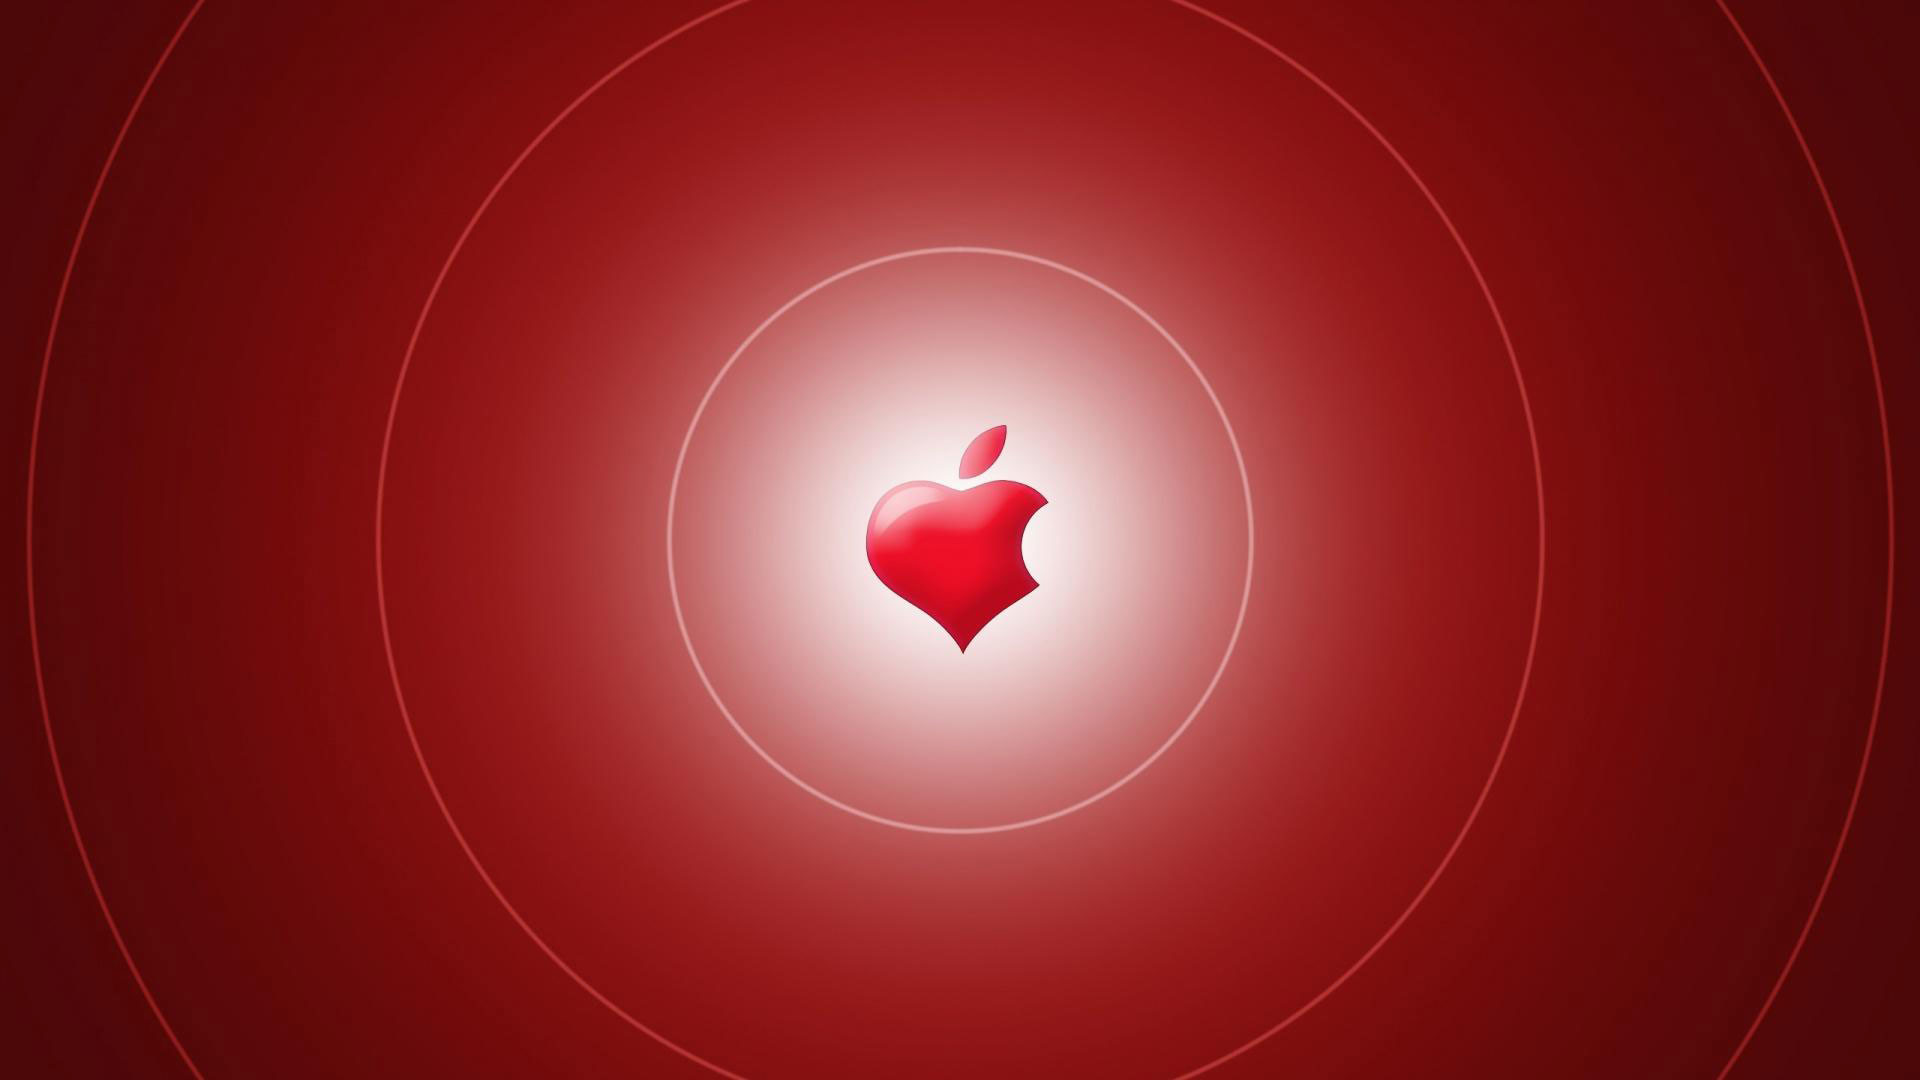 1920x1080 hd pics photos cute love heart apple logo attractive hd quality desktop background  wallpaper